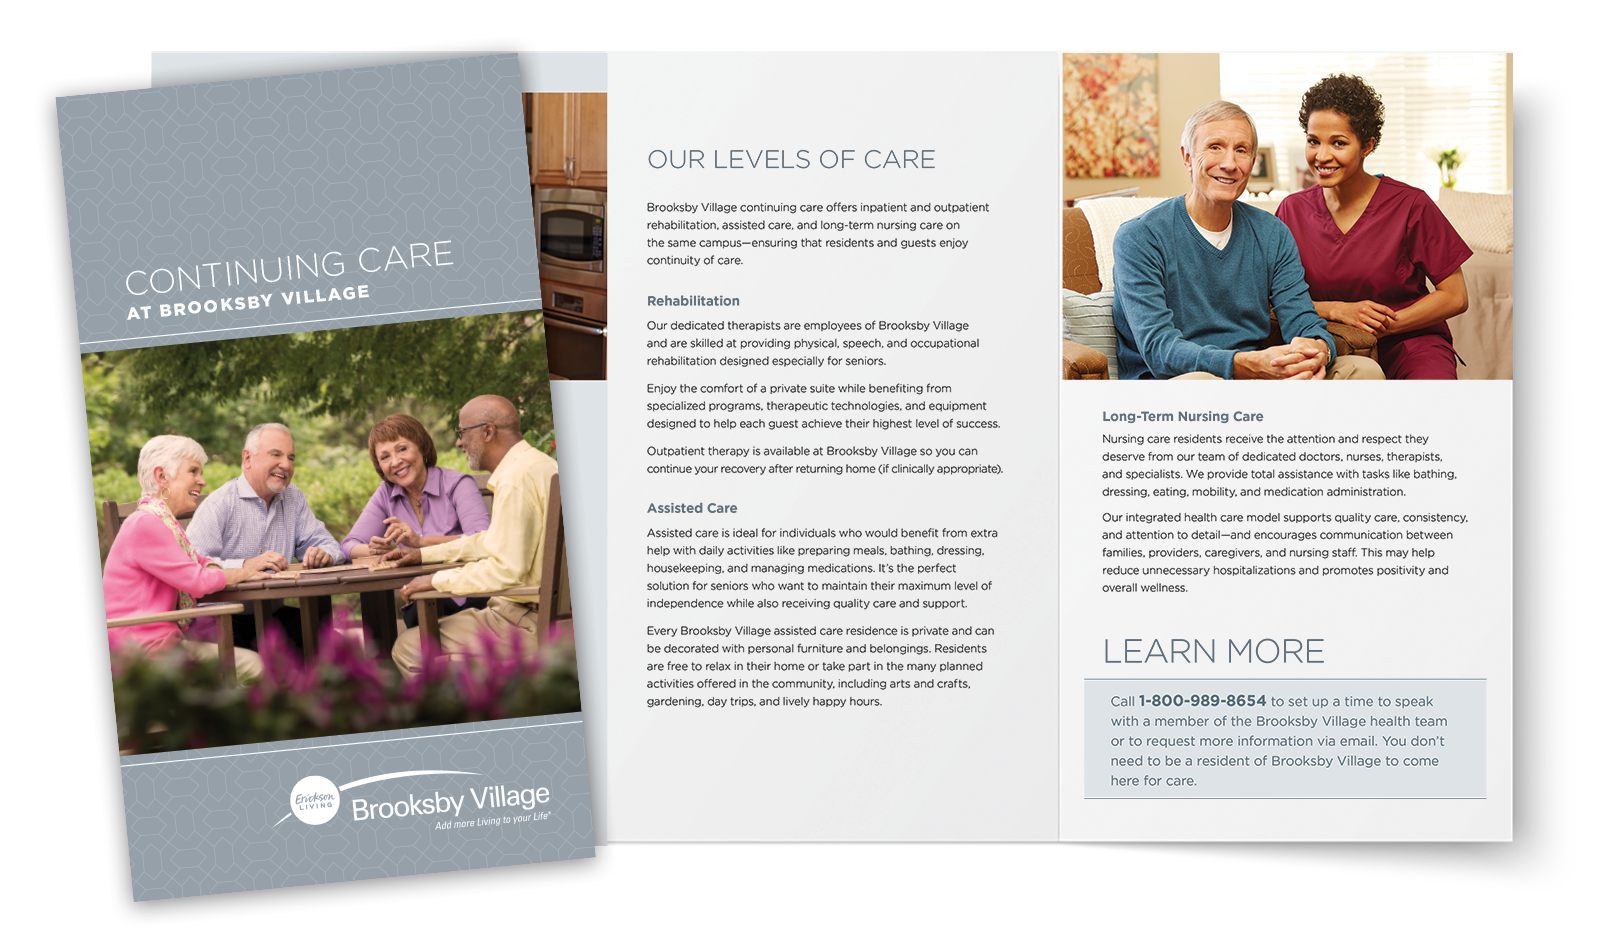 Brooksby Village Continuing Care brochure and spread